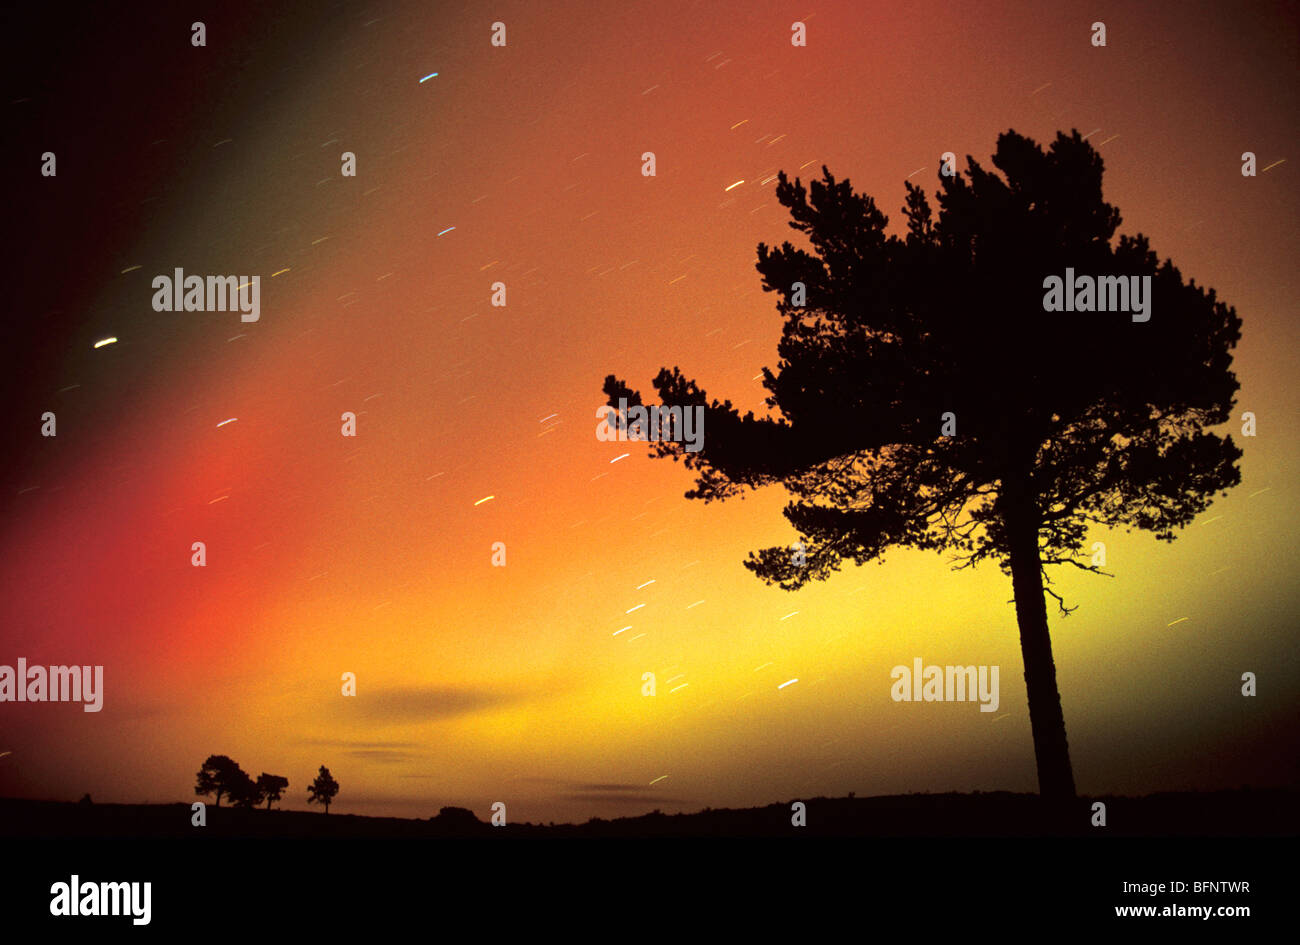 Aurora Borealis and Scots Pine, Scotland. Stock Photo